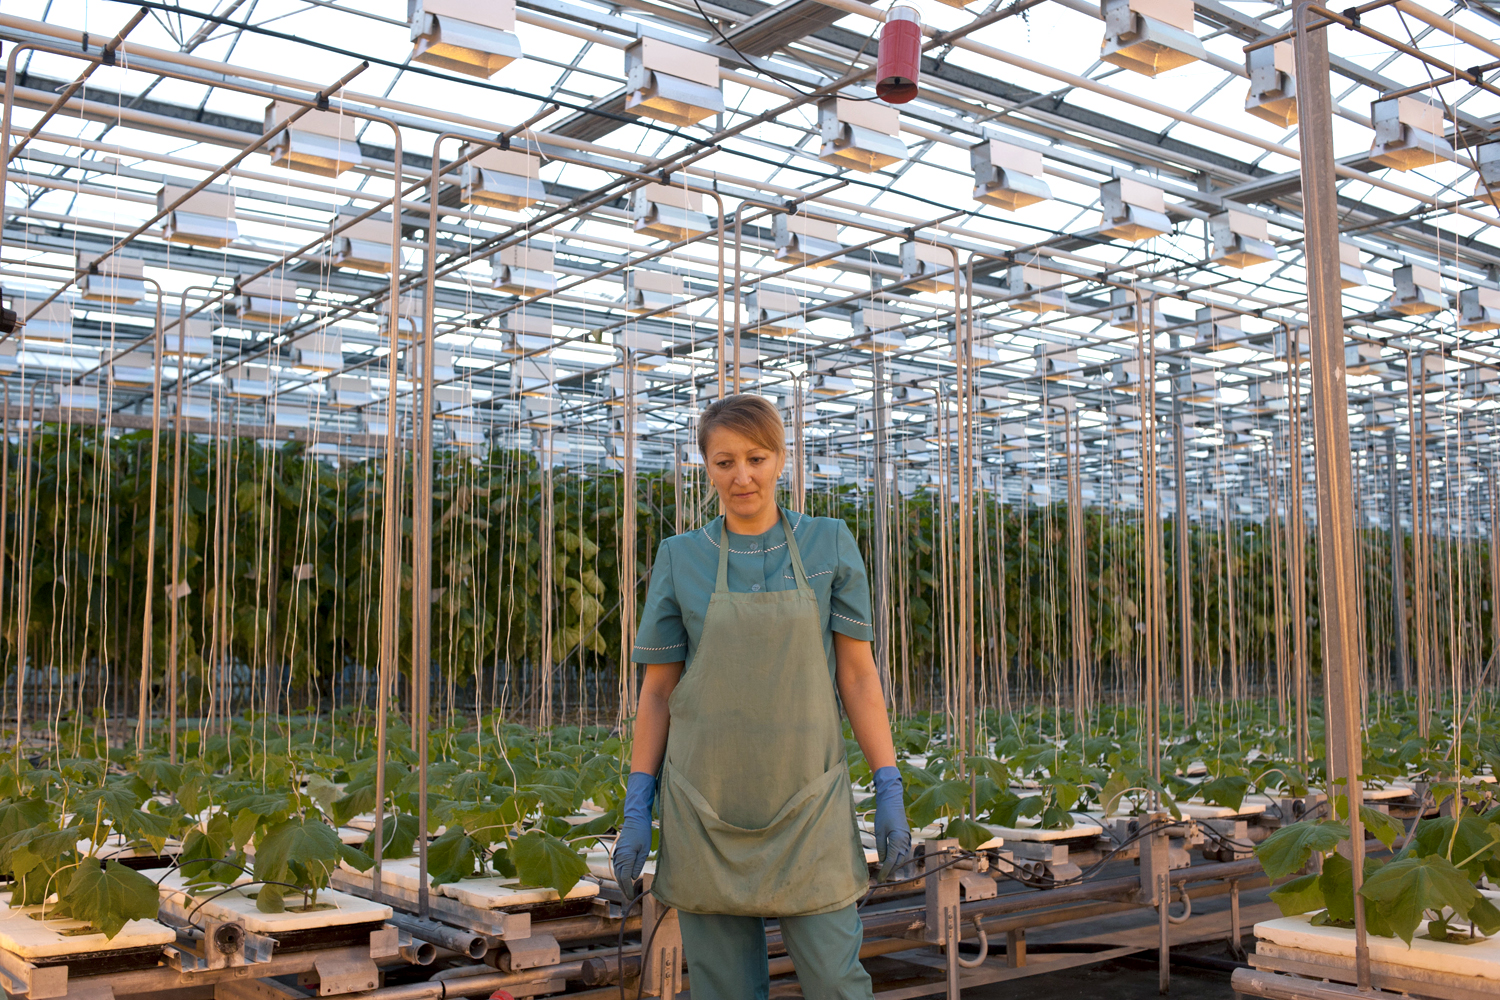 The greenhouse collective - A Worker Tends To Cucumbers In The Greenhouse At A Collective Farm On The Outskirts Of